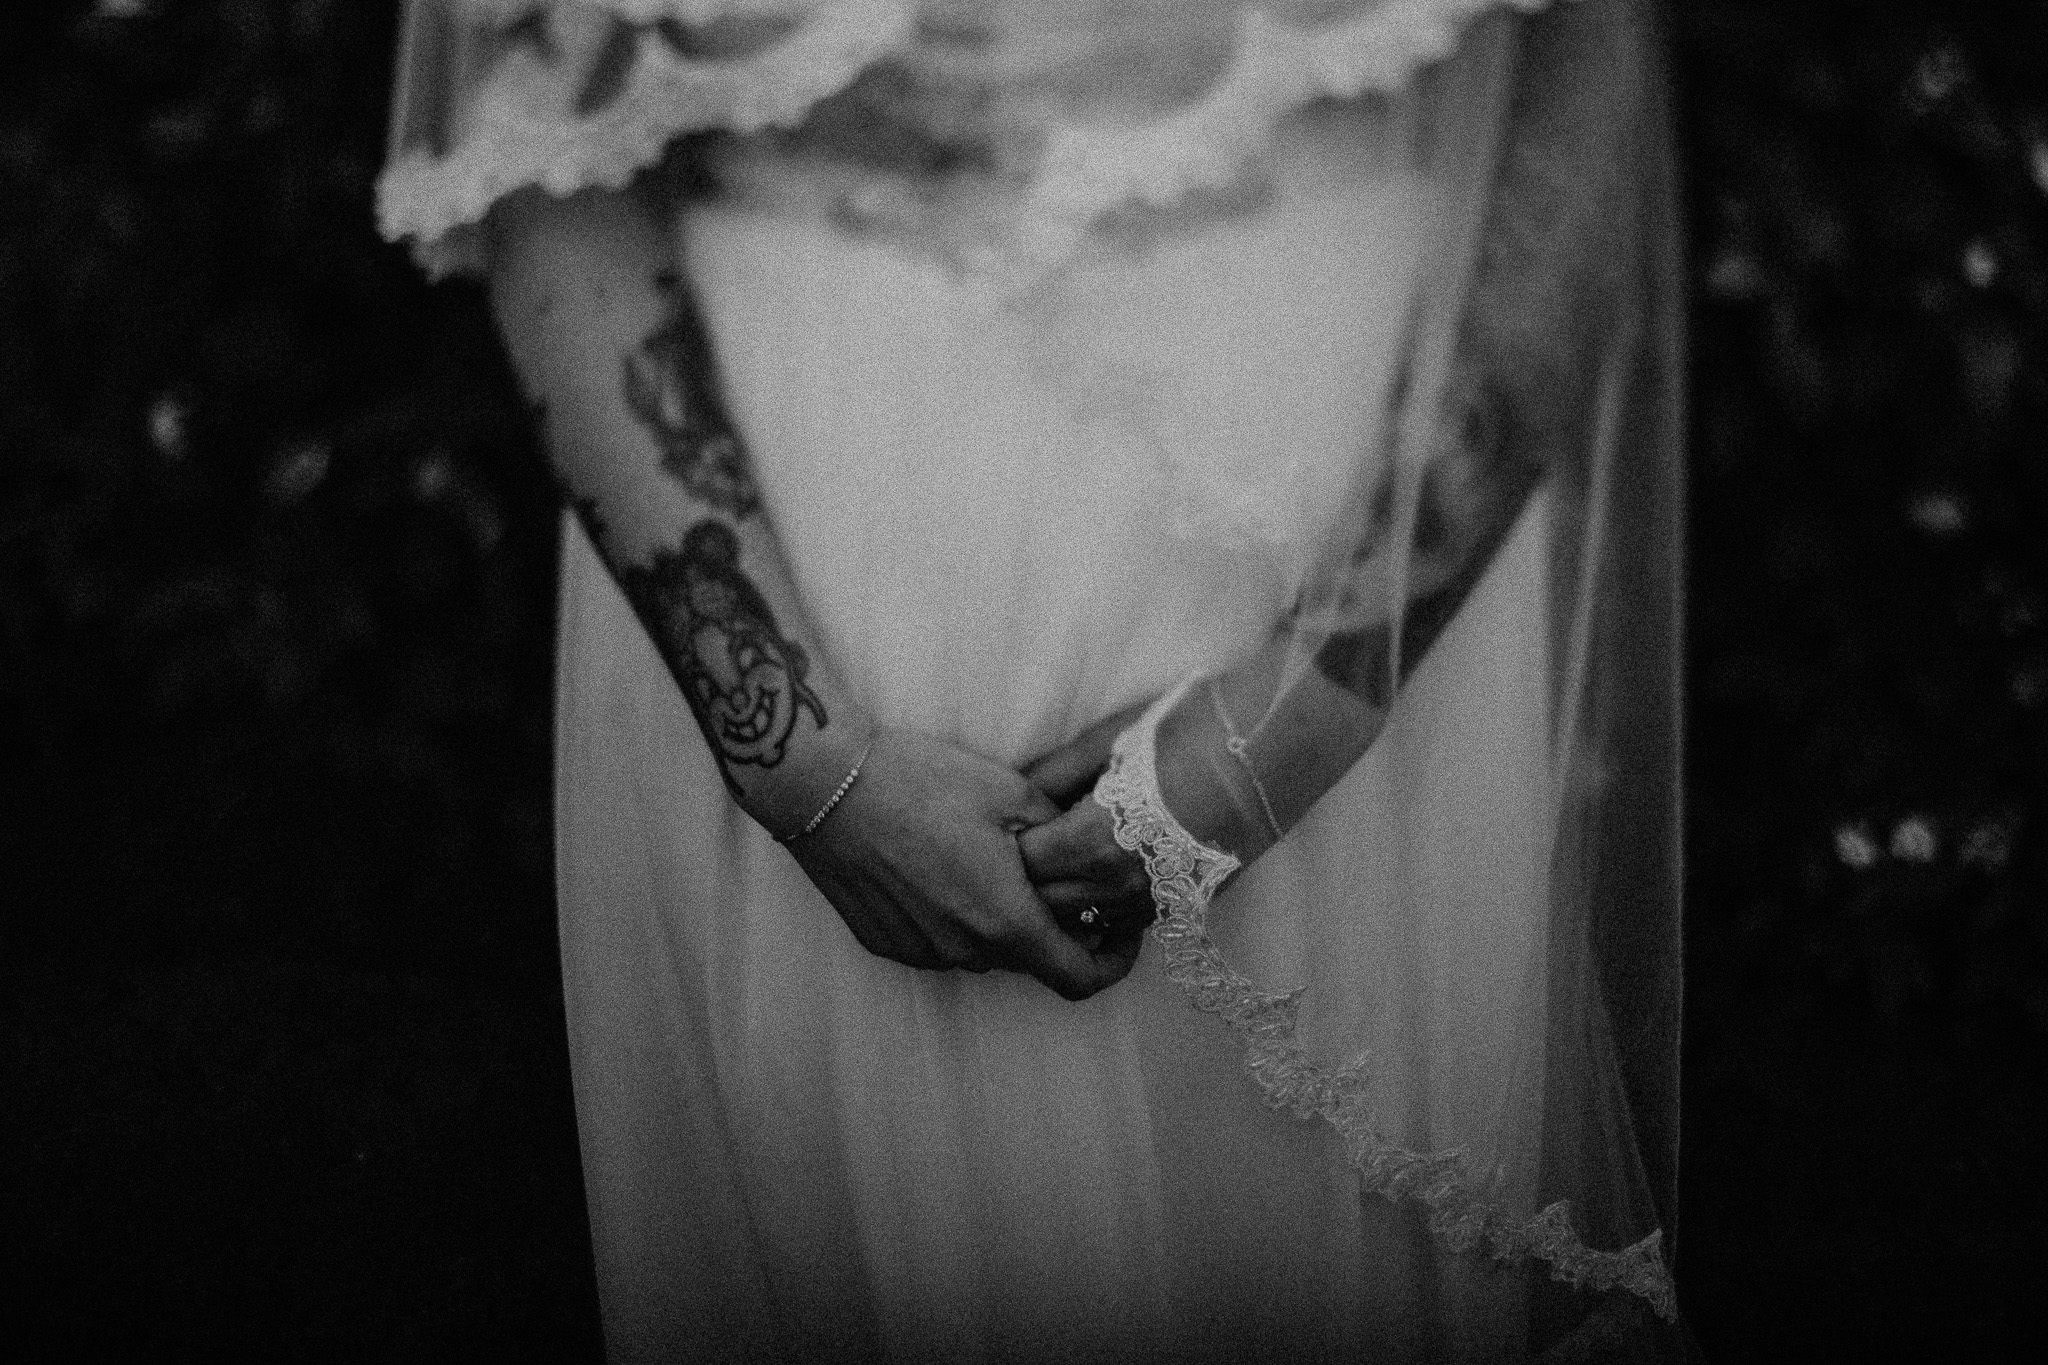 Tattoo'd Bride & Groom Wedding Photographs-137.jpg